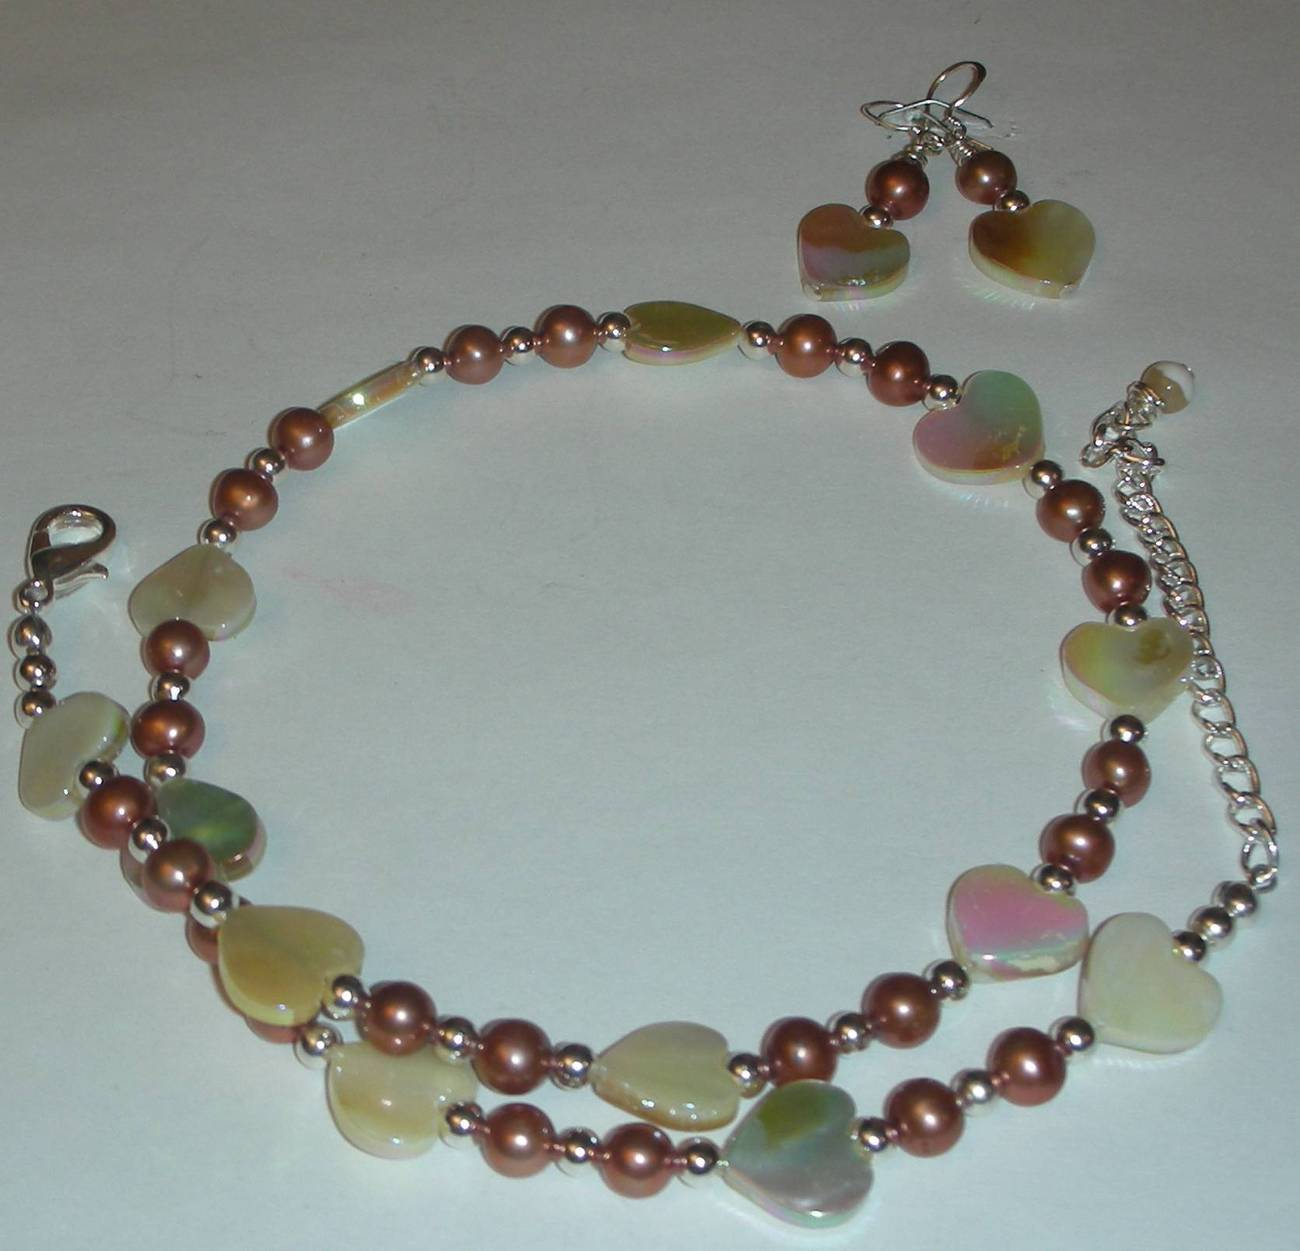 Genuine Mother of Pearl And Fresh Water Pearls Necklace